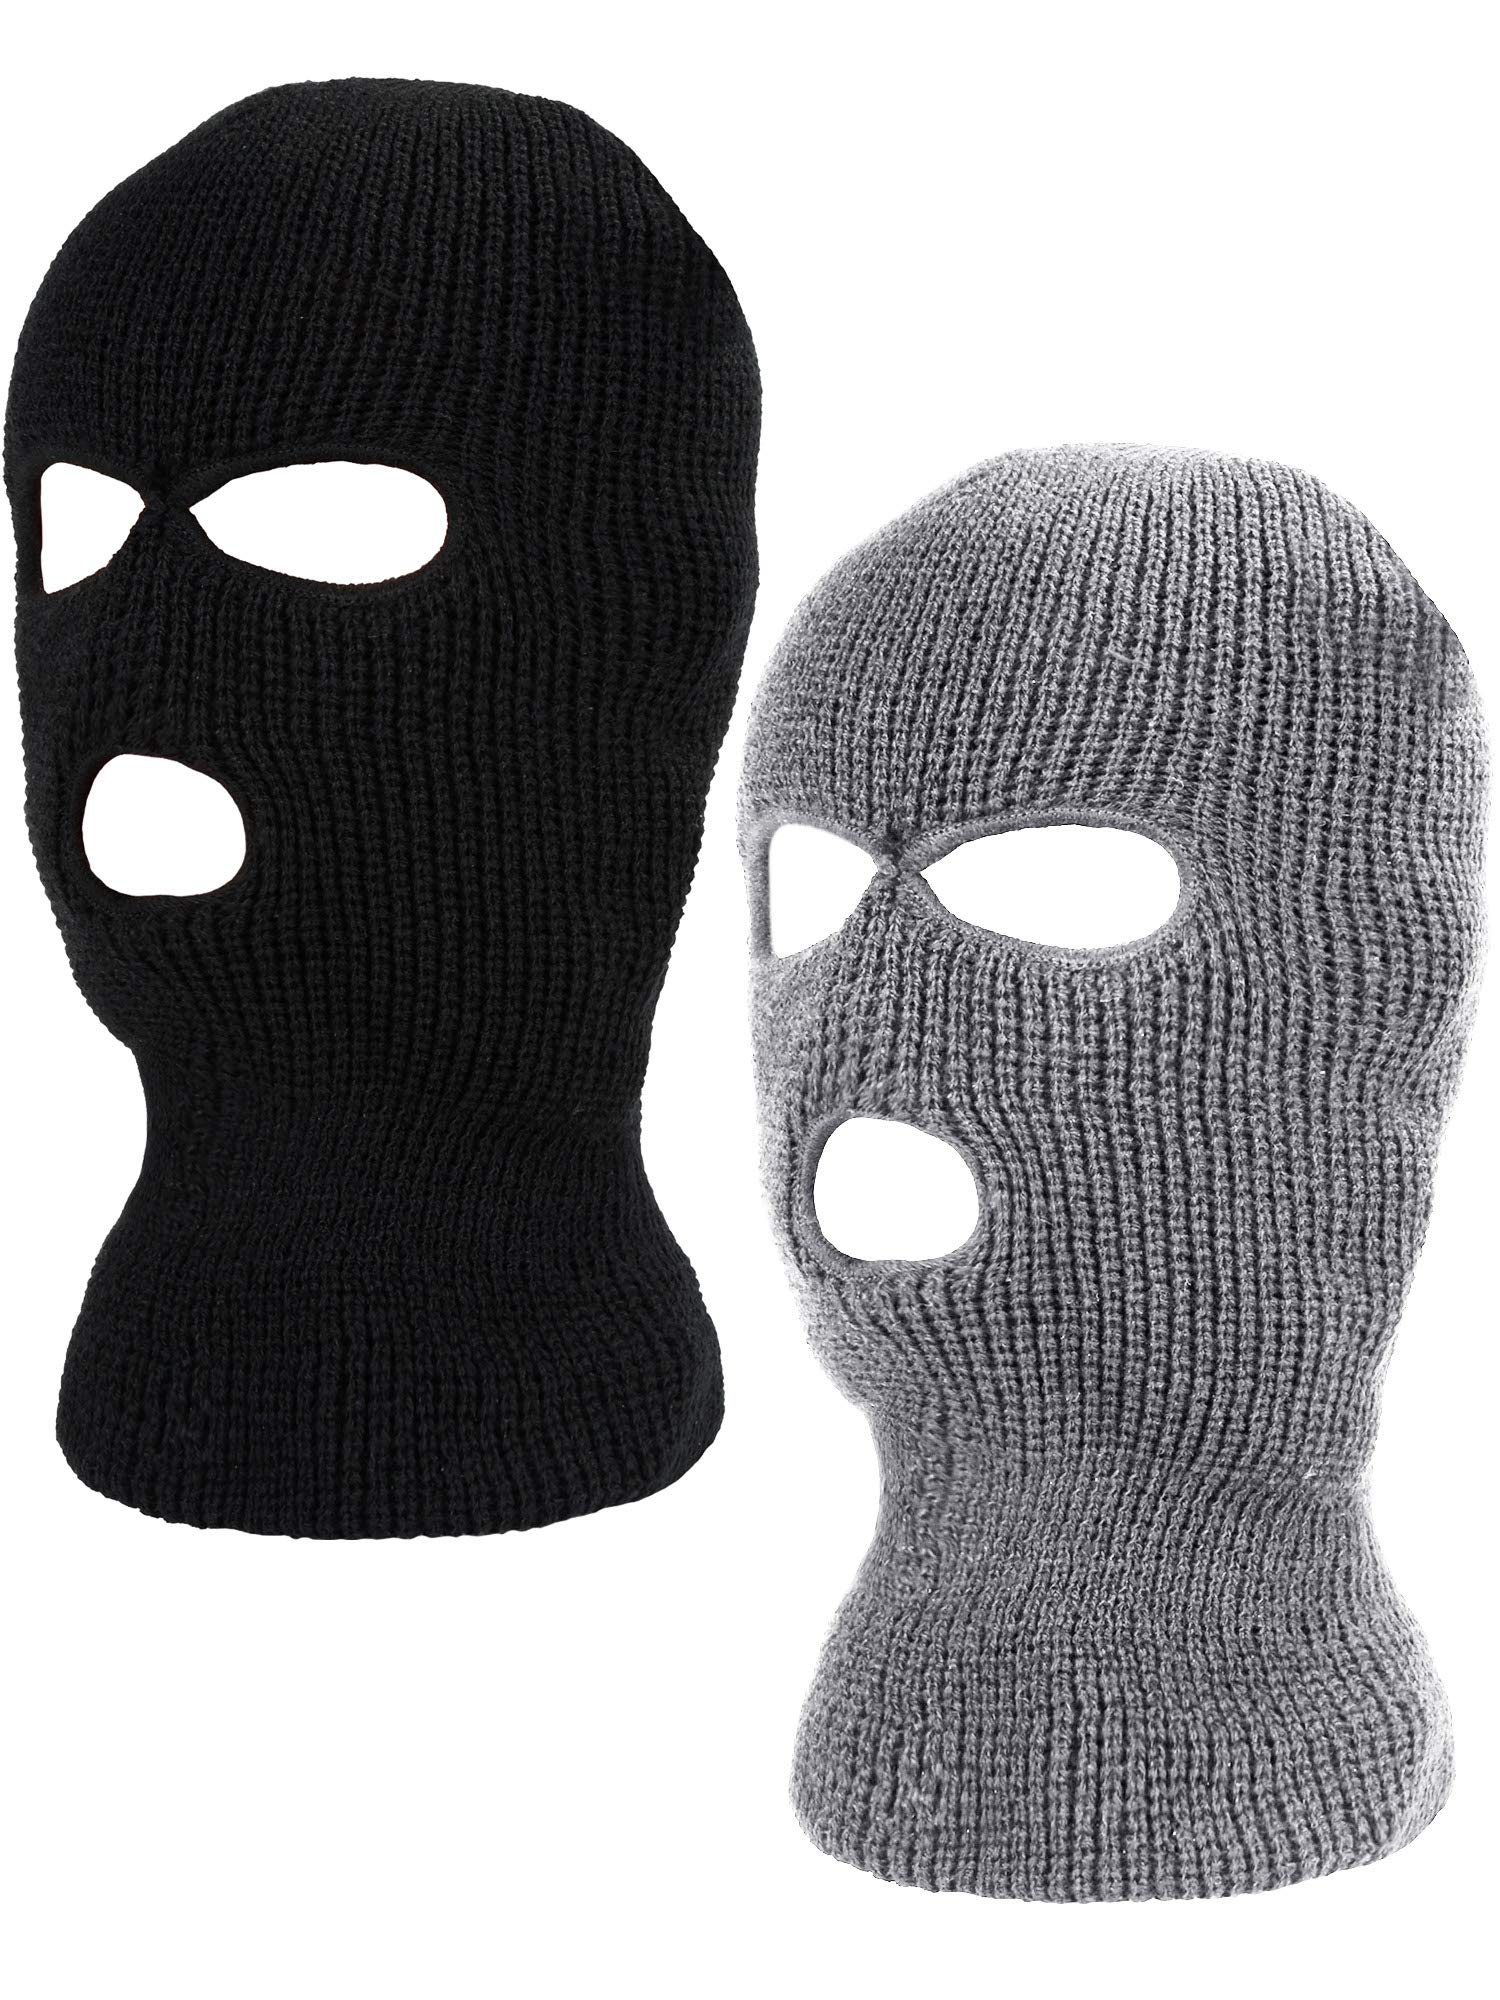 WILLBOND 2 Pieces Knitted Full Face Cover 3-Hole Ski Mask Winter Balaclava Face Mask for Adult Supplies